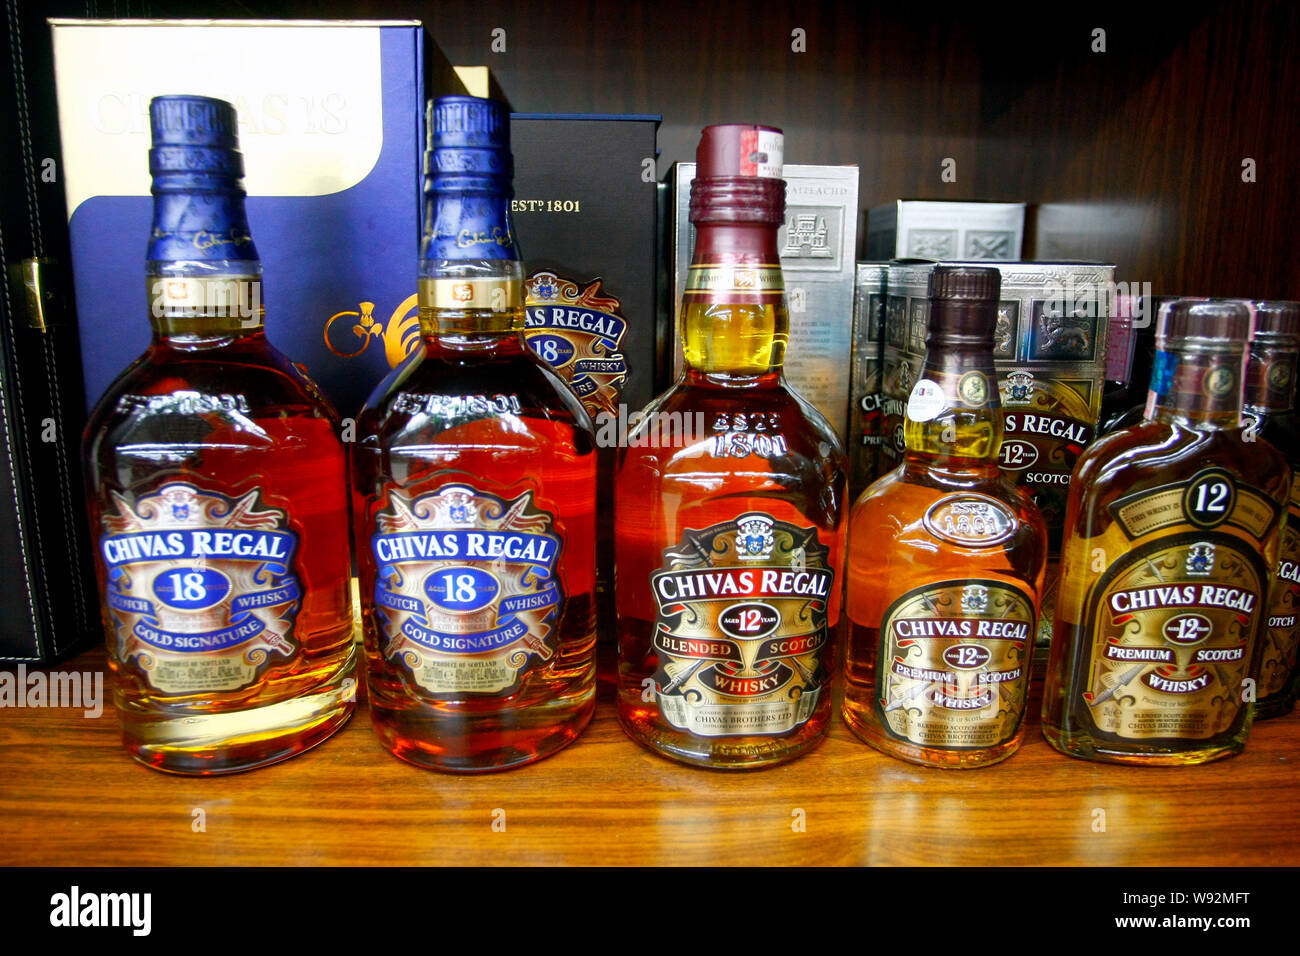 Pernod Stock Photos & Pernod Stock Images - Page 2 - Alamy